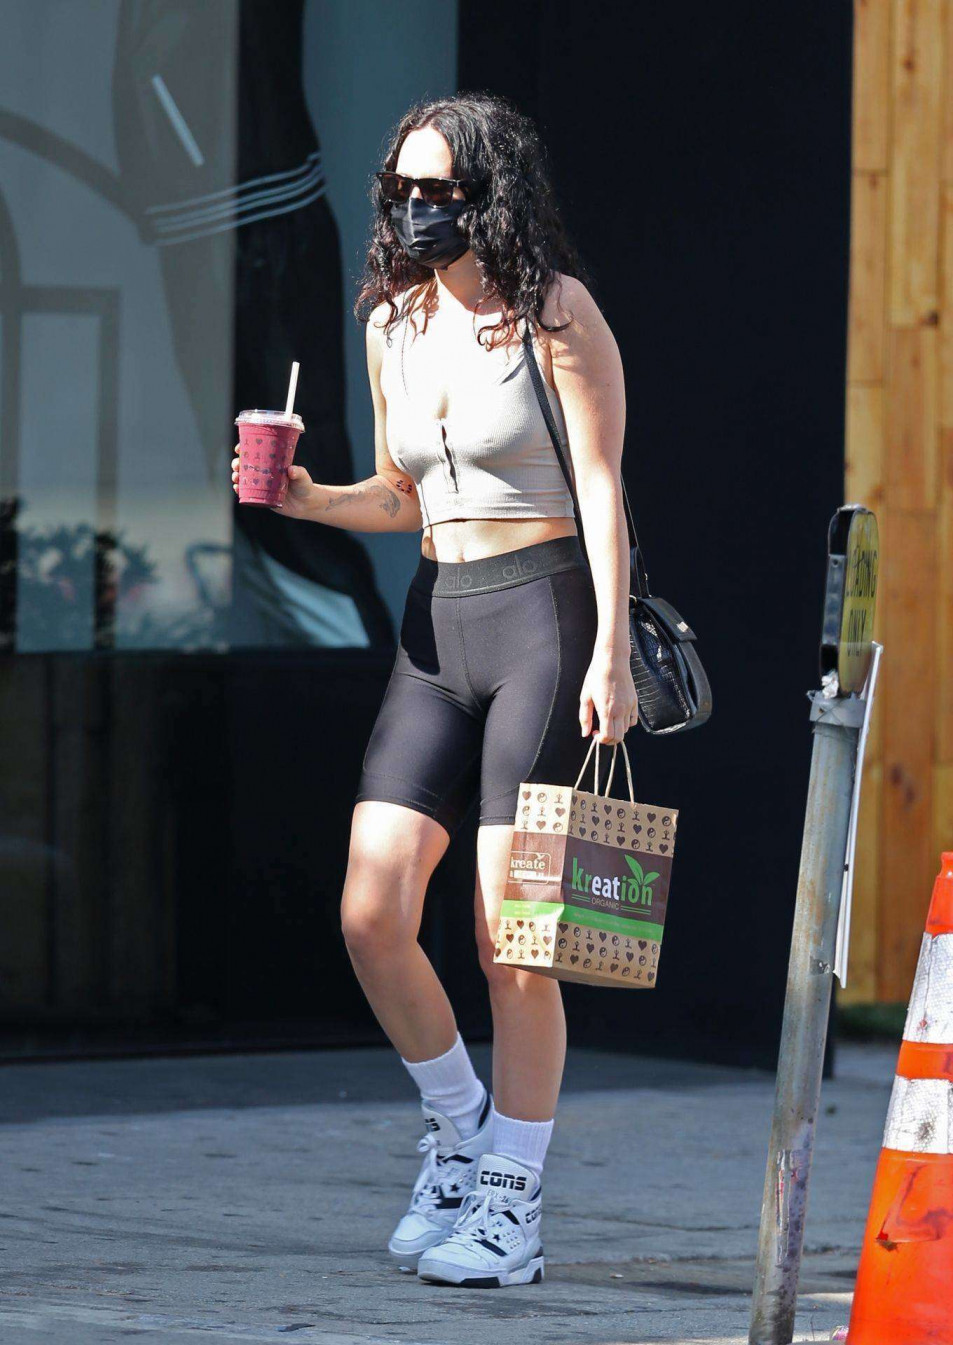 Rumer-Willis-Cameltoe-In-Black-Yoga-Pants-5.jpg